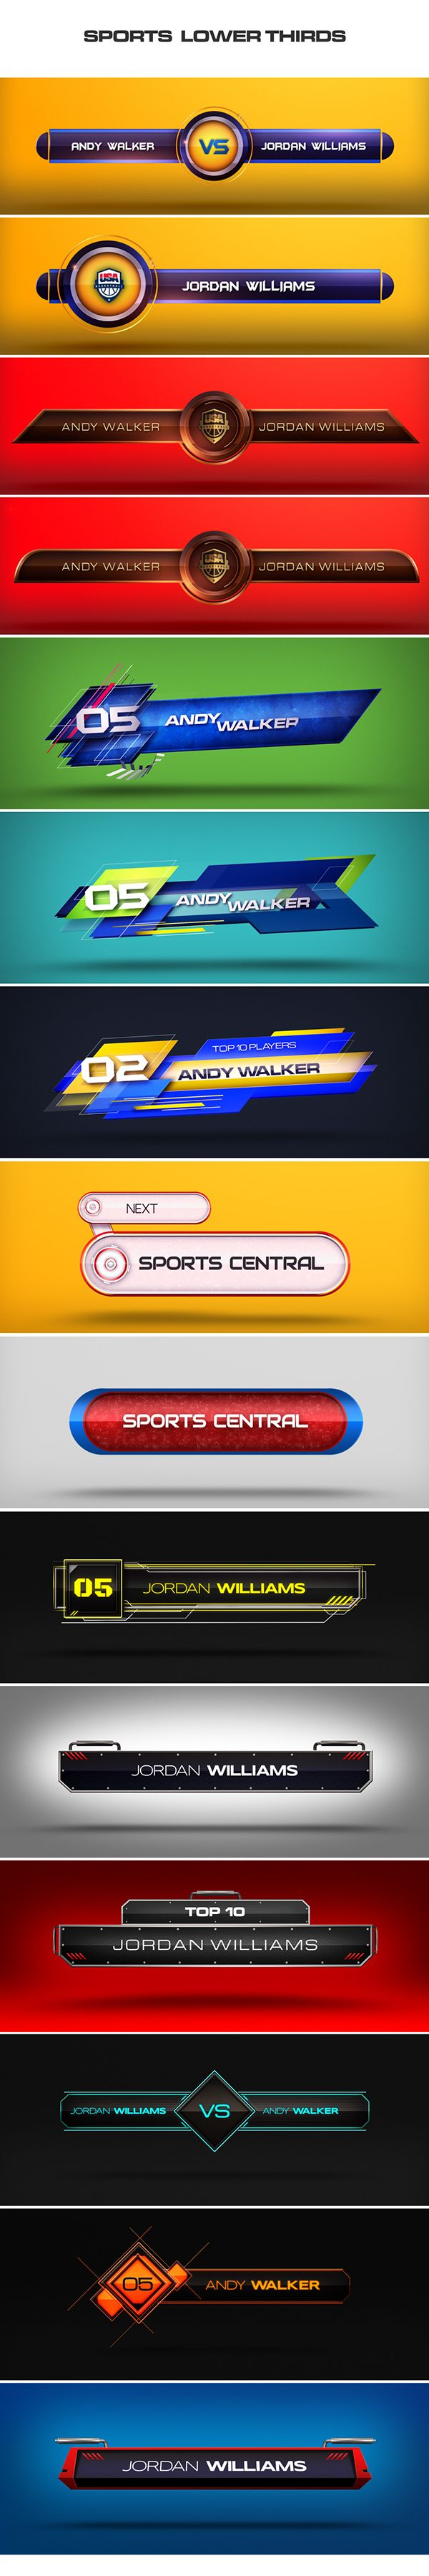 Digitaljuice - Sports Lowerthirds on Behance